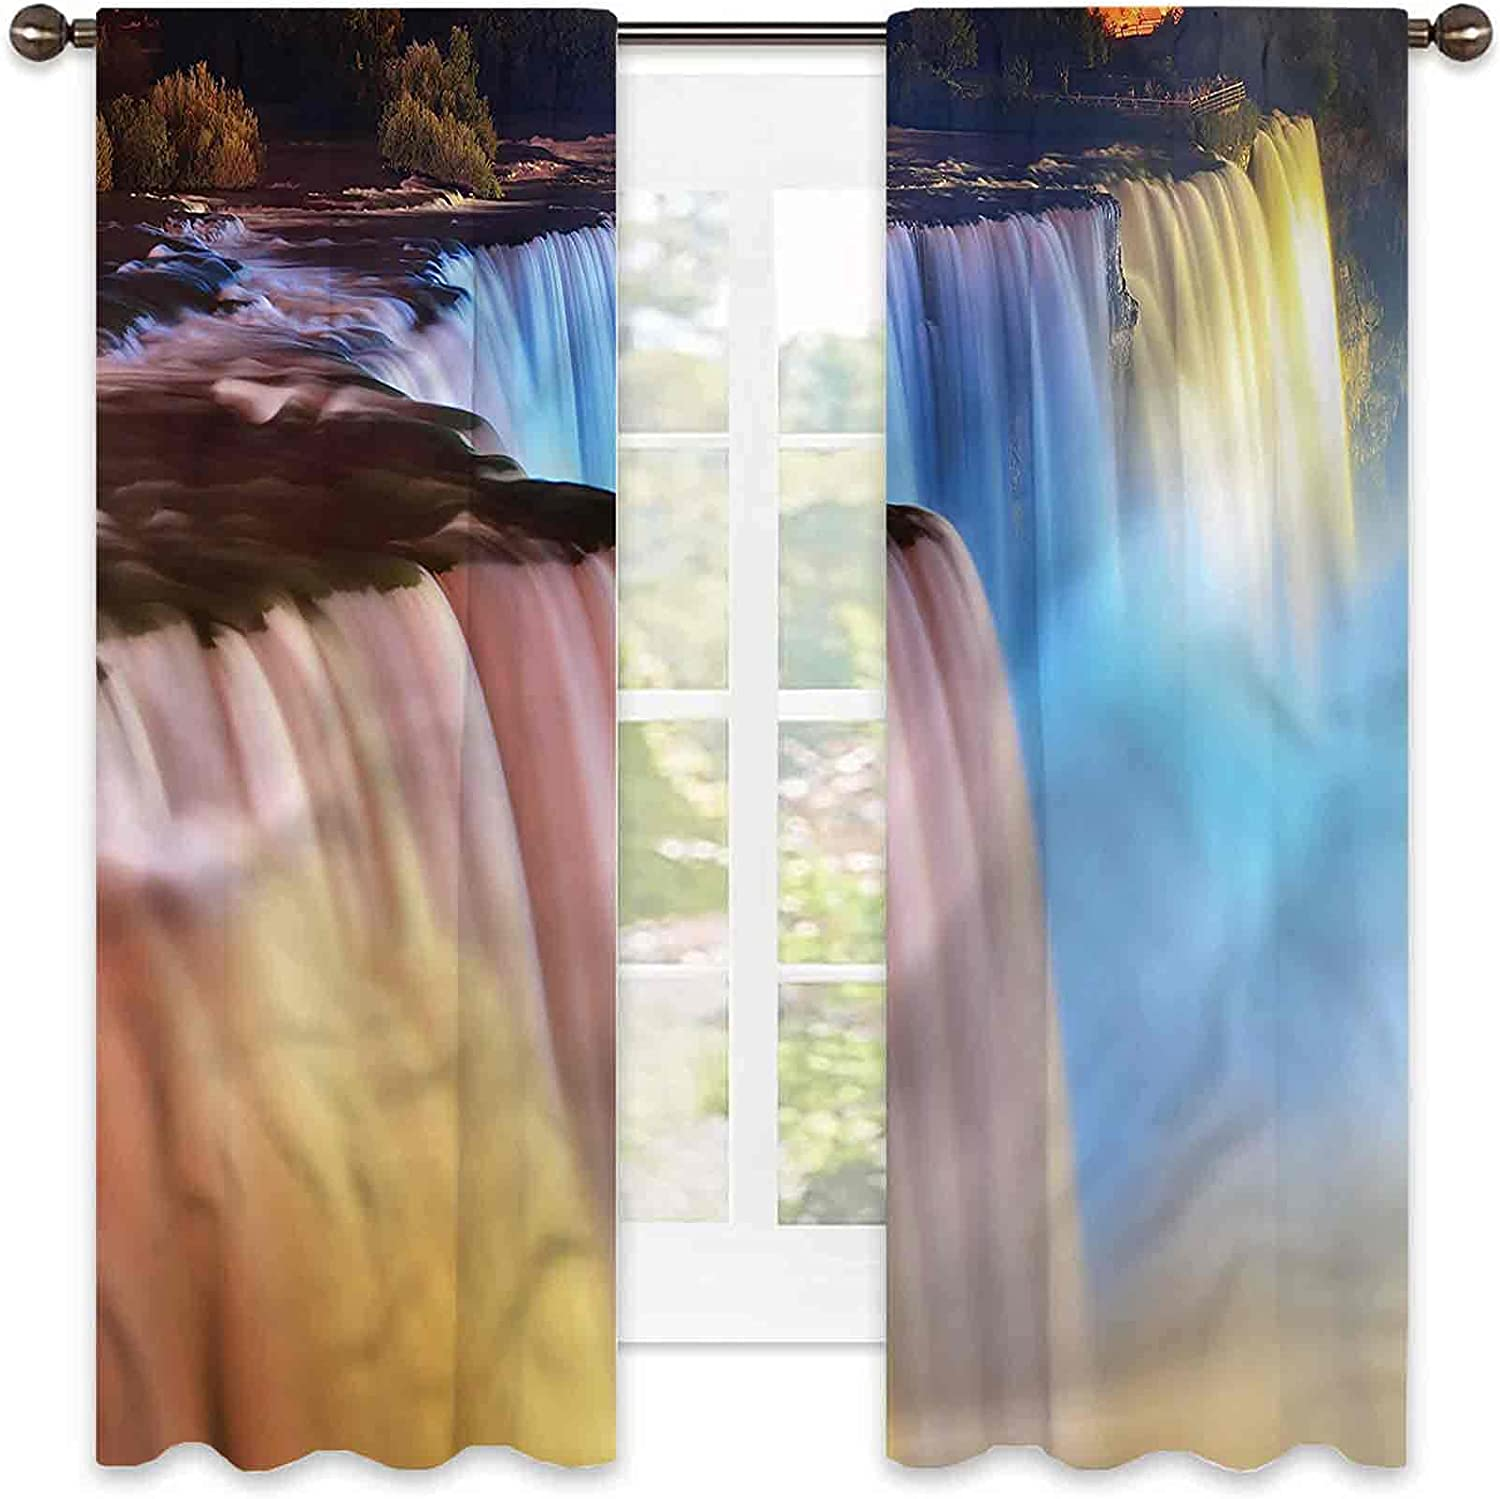 Waterfall Heat Insulation Curtain Cascade Colorful Stream Livi Max 44% OFF SEAL limited product